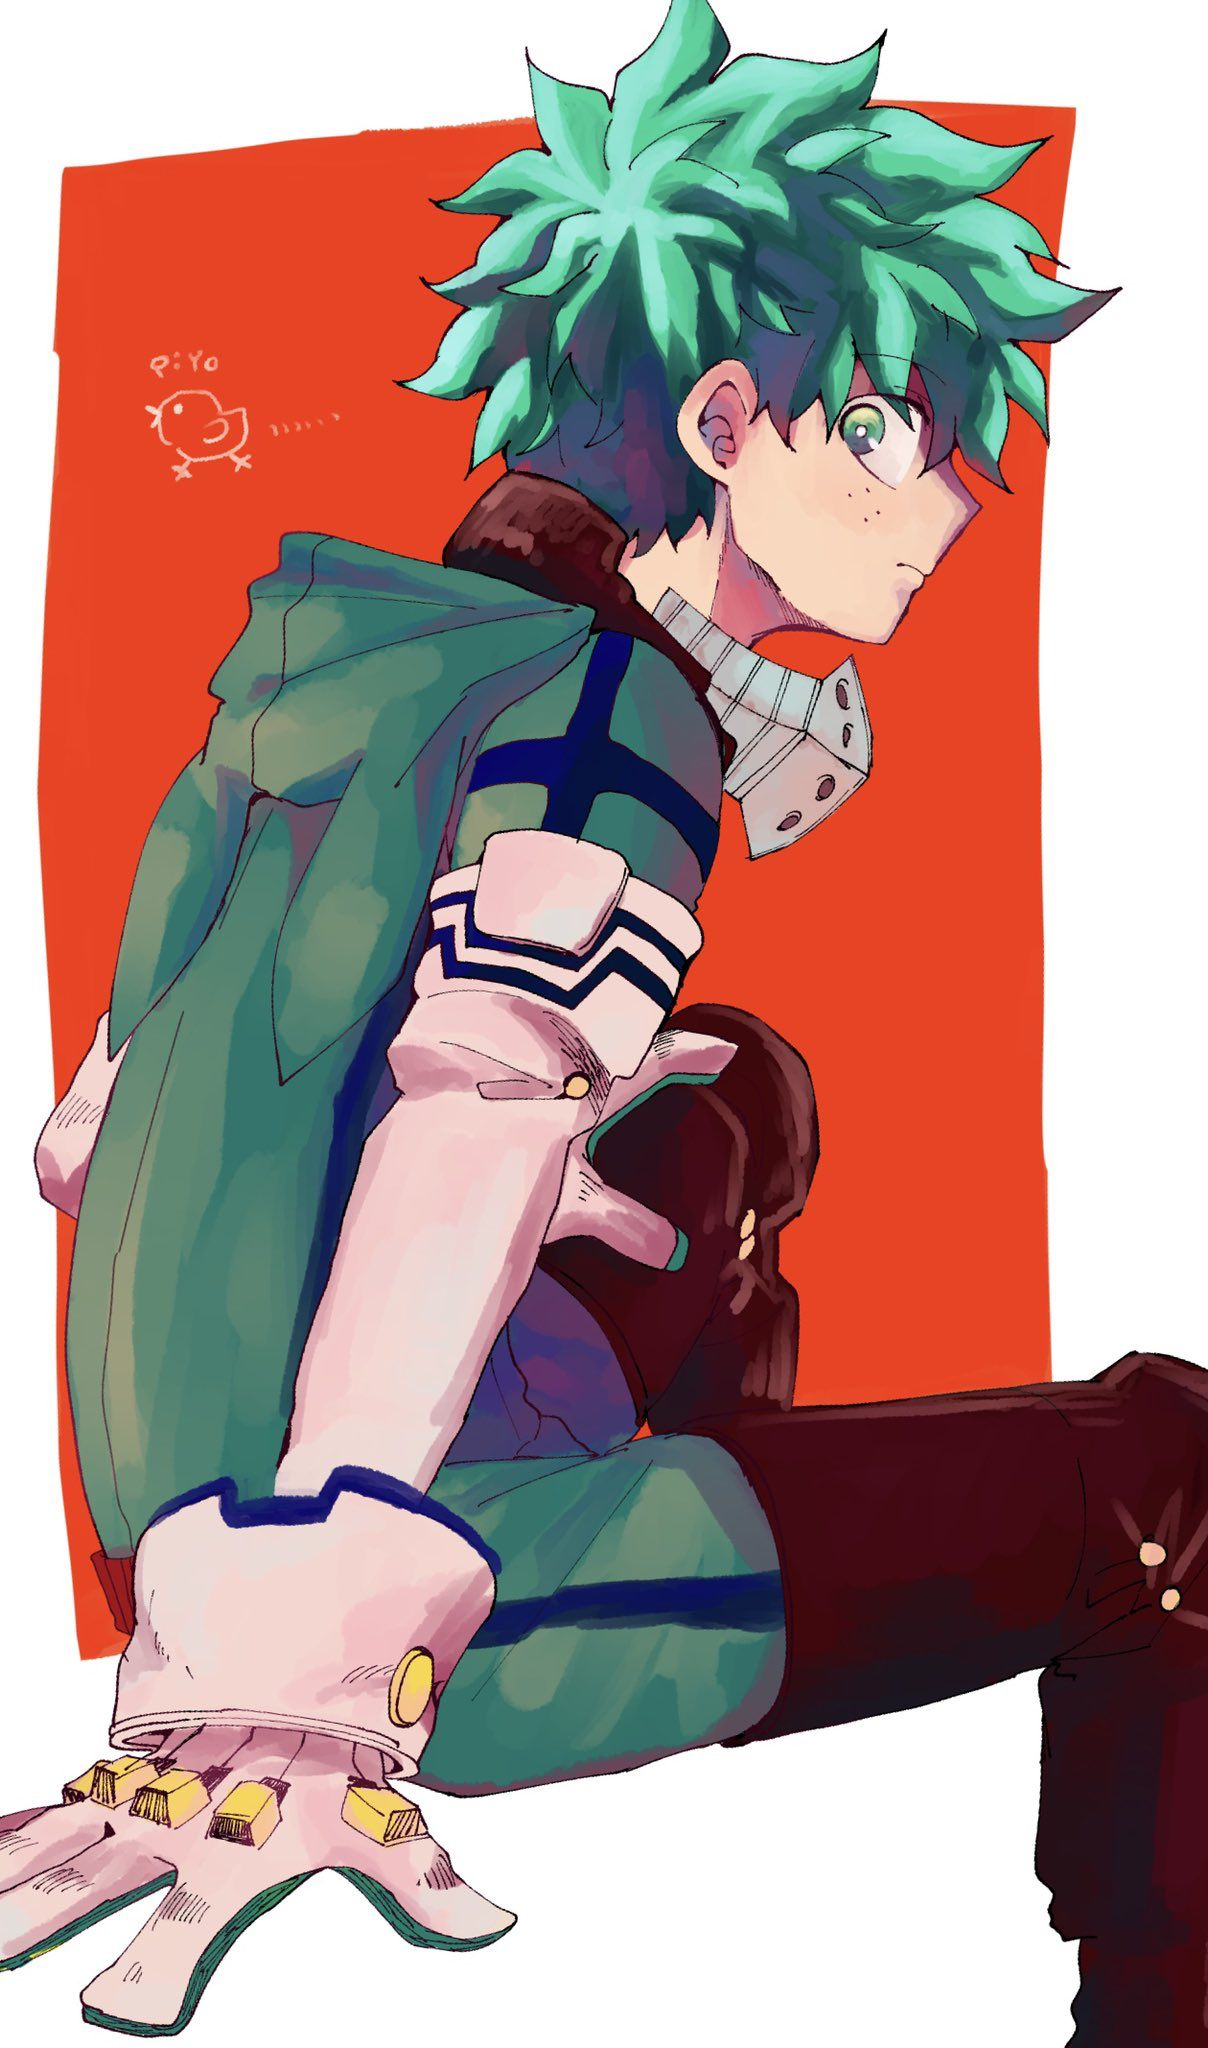 Pin by Briana☔️ on 僕のヒーローアカデミア2 Deku boku no hero, My